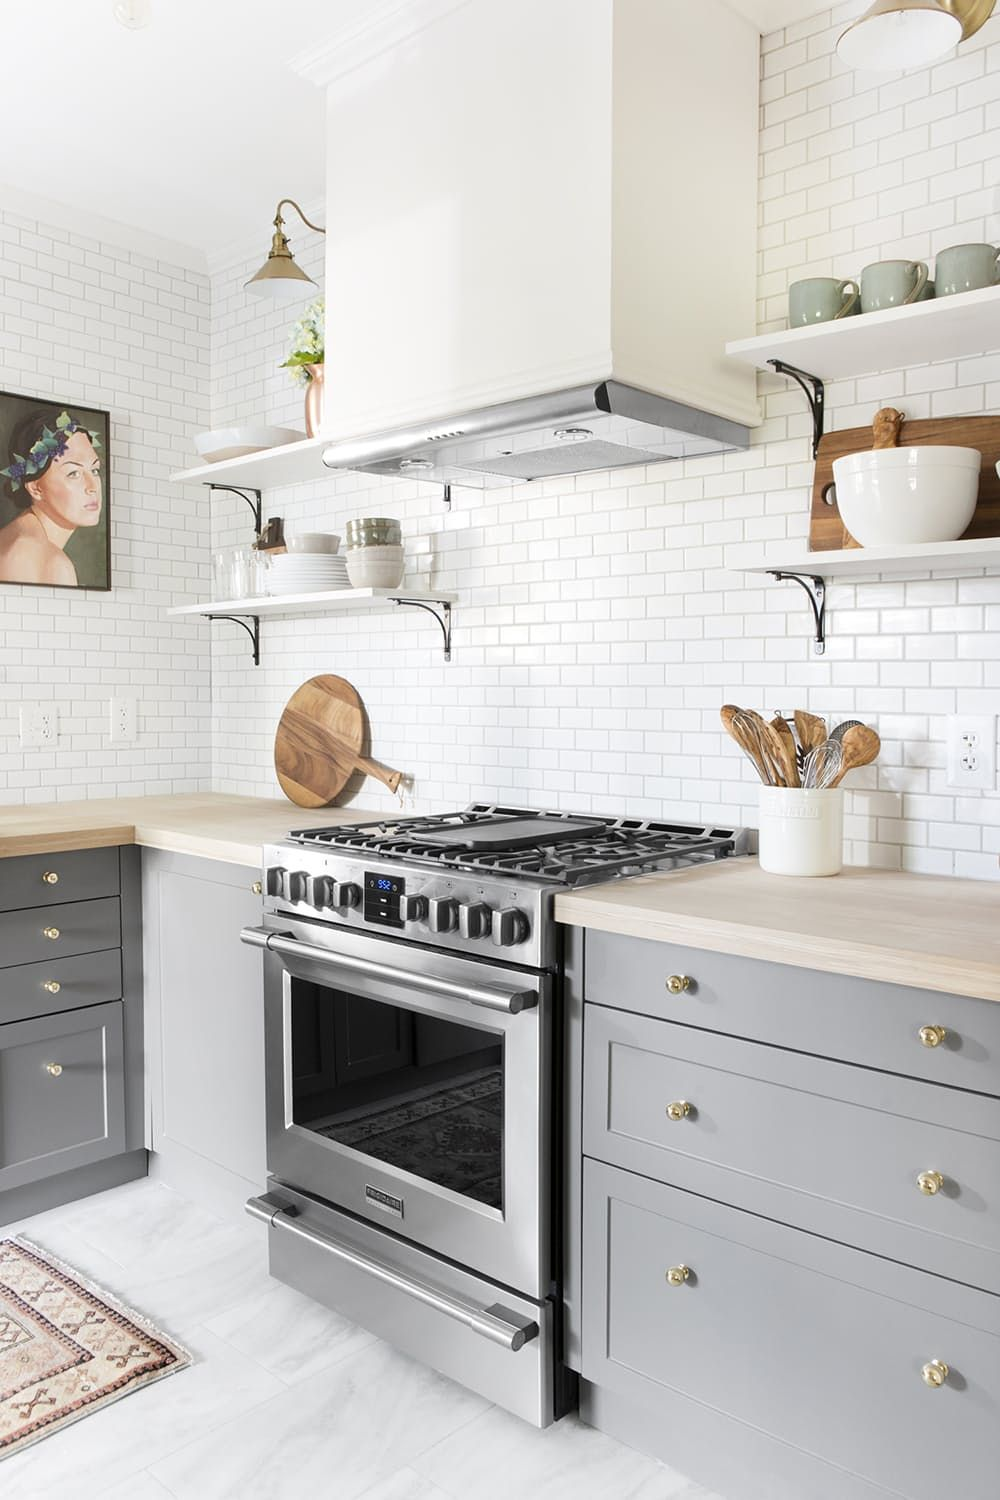 The 100 Year Old Style That S Suddenly The Hottest Thing In Kitchens Kitchen Interior Kitchen Renovation Kitchen Design